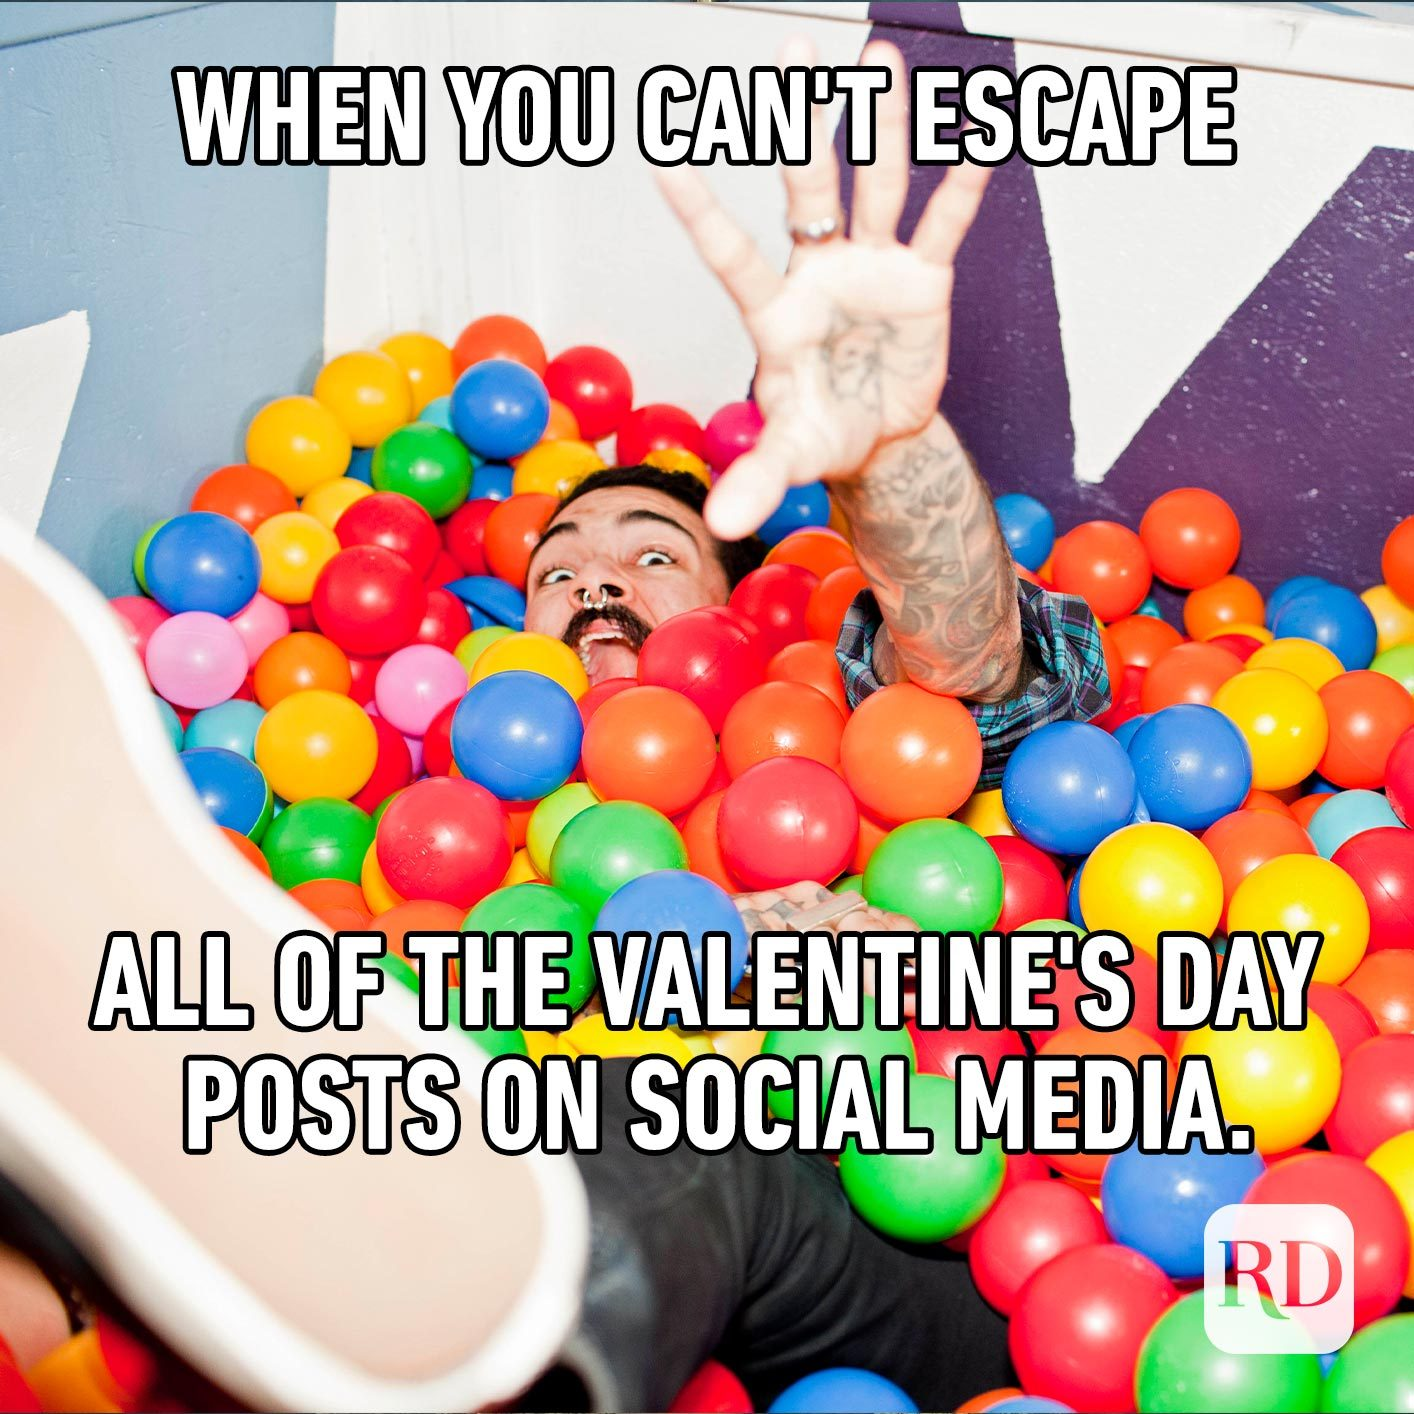 Man falling into a ball pit. Meme text: When you can't escape all of the Valentine's Day posts on social media.